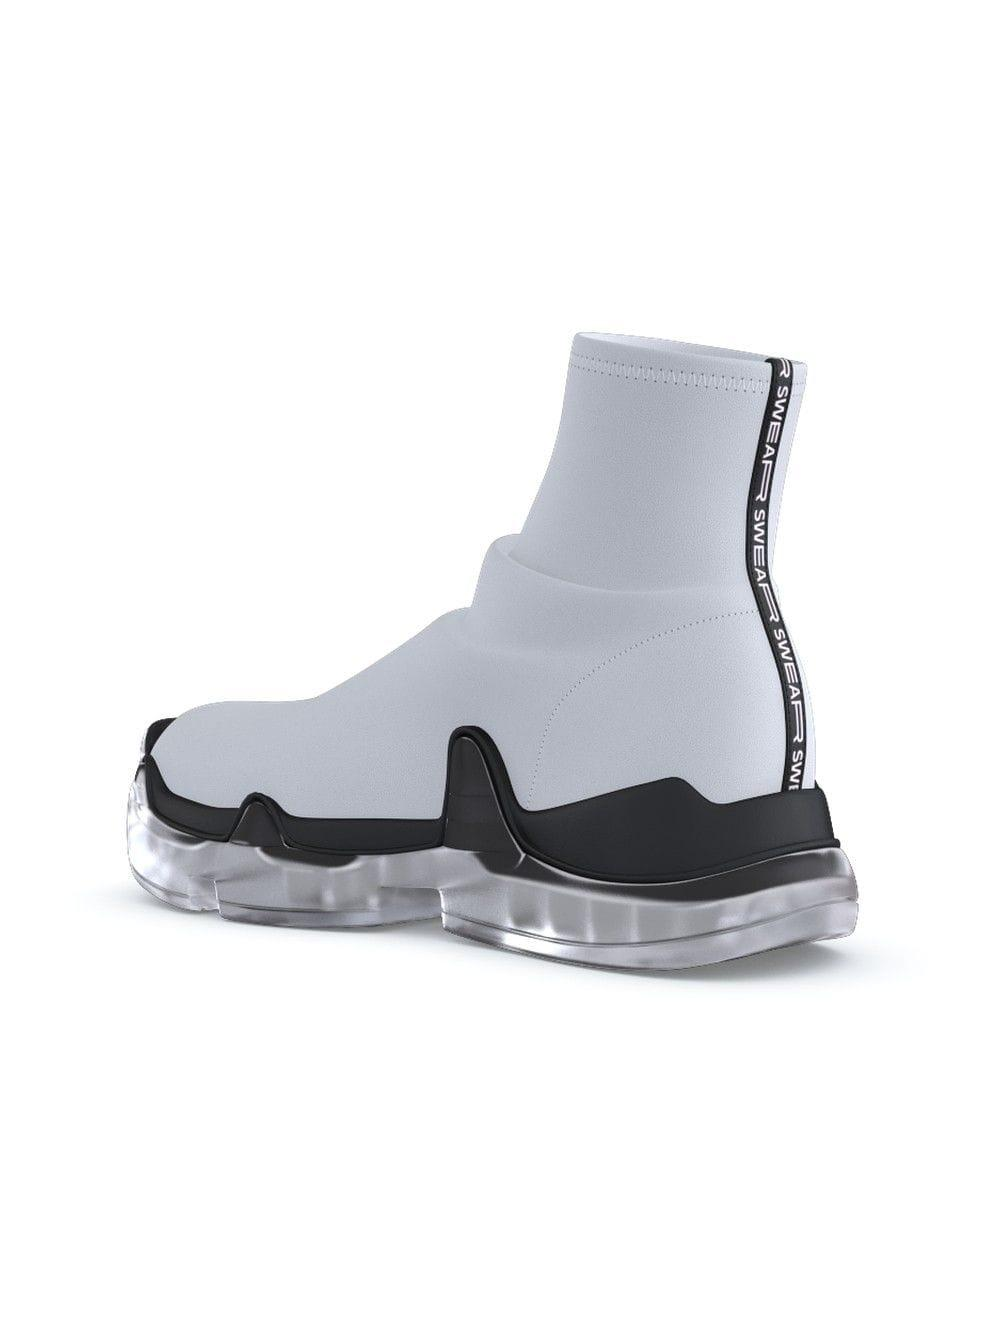 Swear Leather X Uglyworldwide Air Rev. Trigger Hi-top Sneakers in White for Men